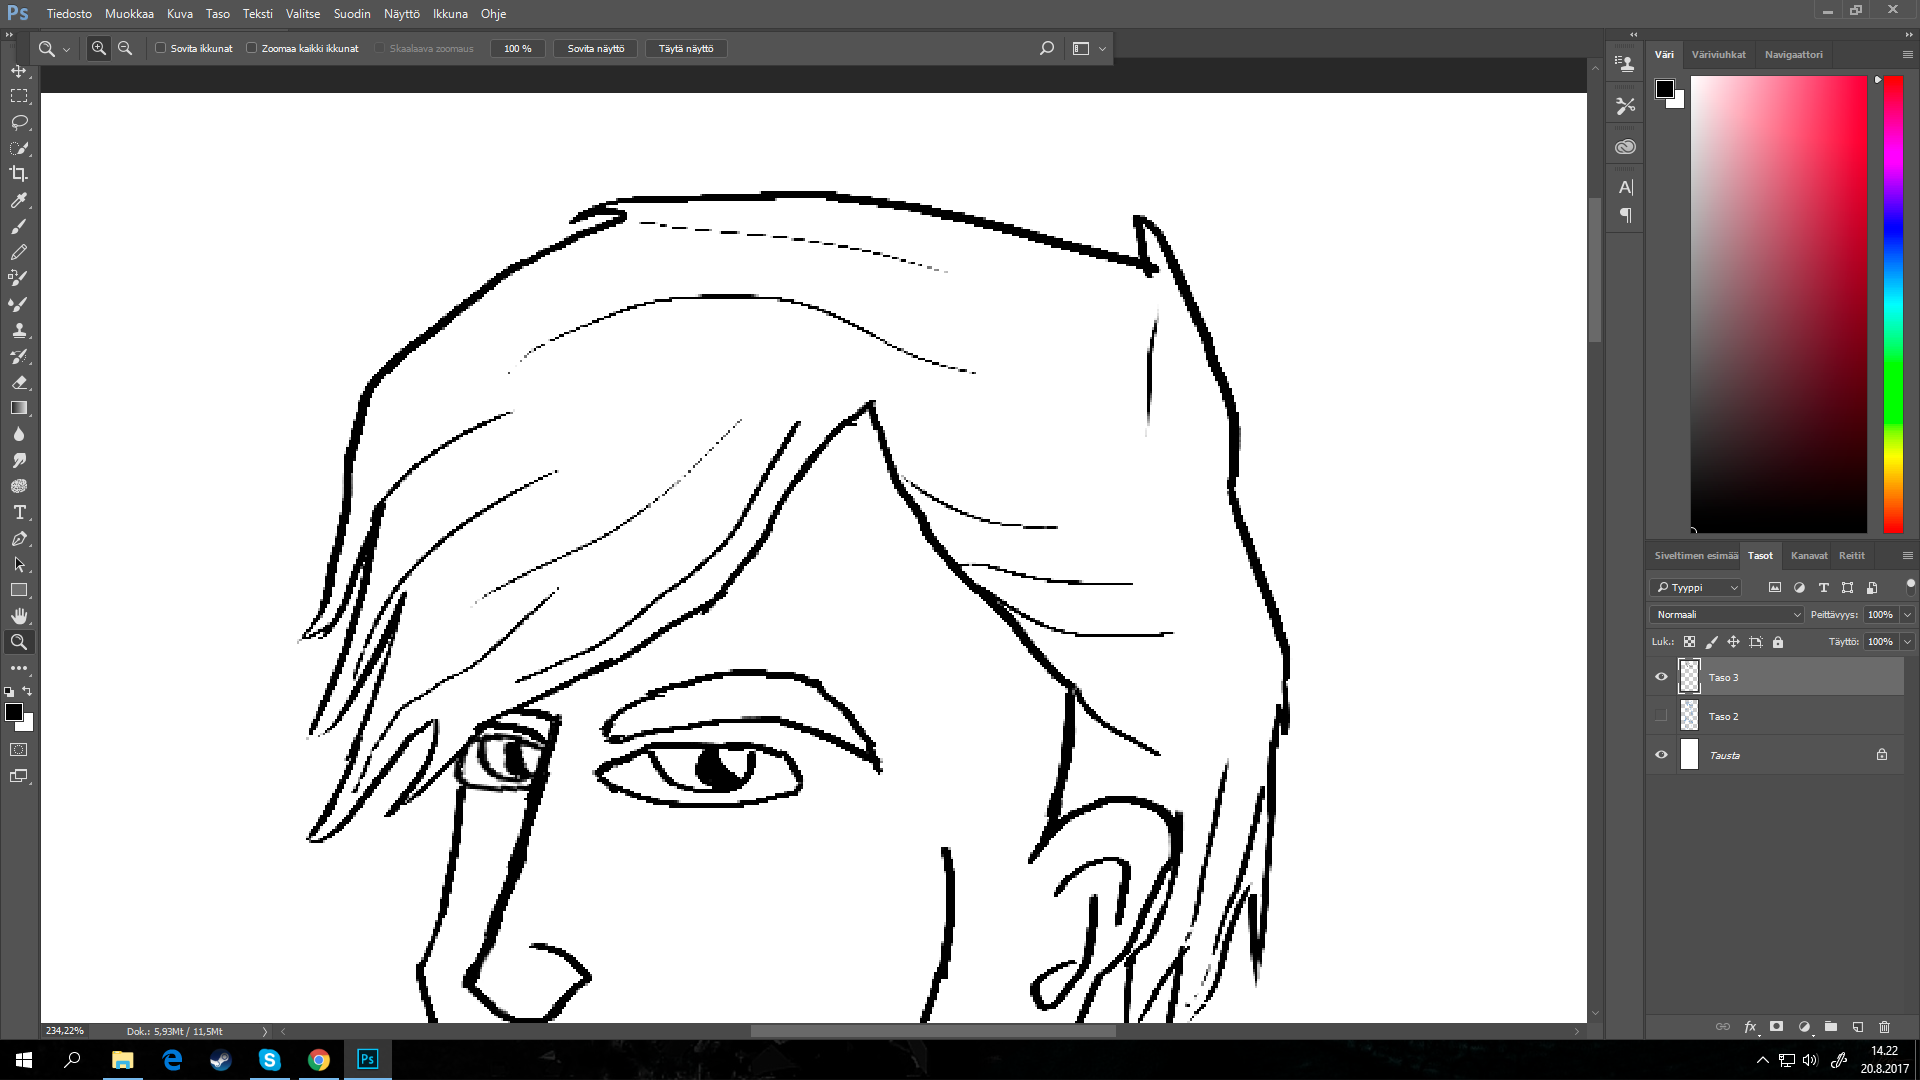 Why Are The Lines I Draw In Photoshop So Pixelated